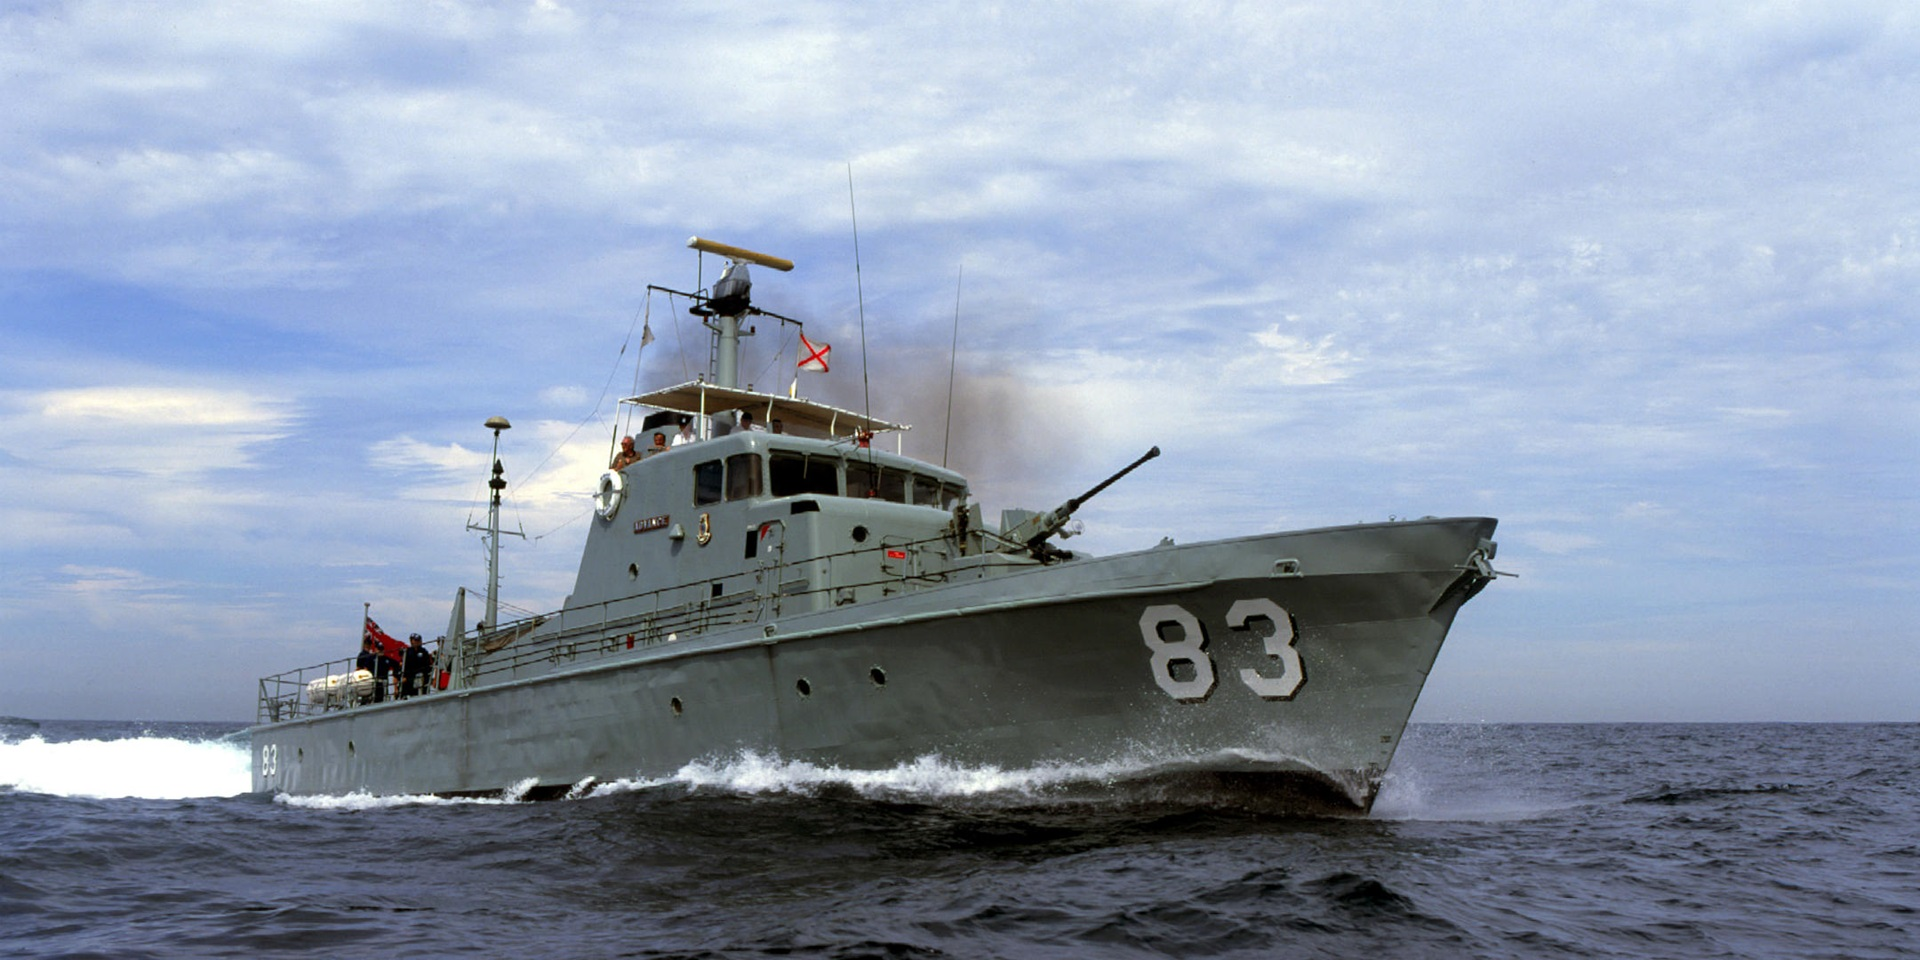 Navy patrol boat HMAS Advance